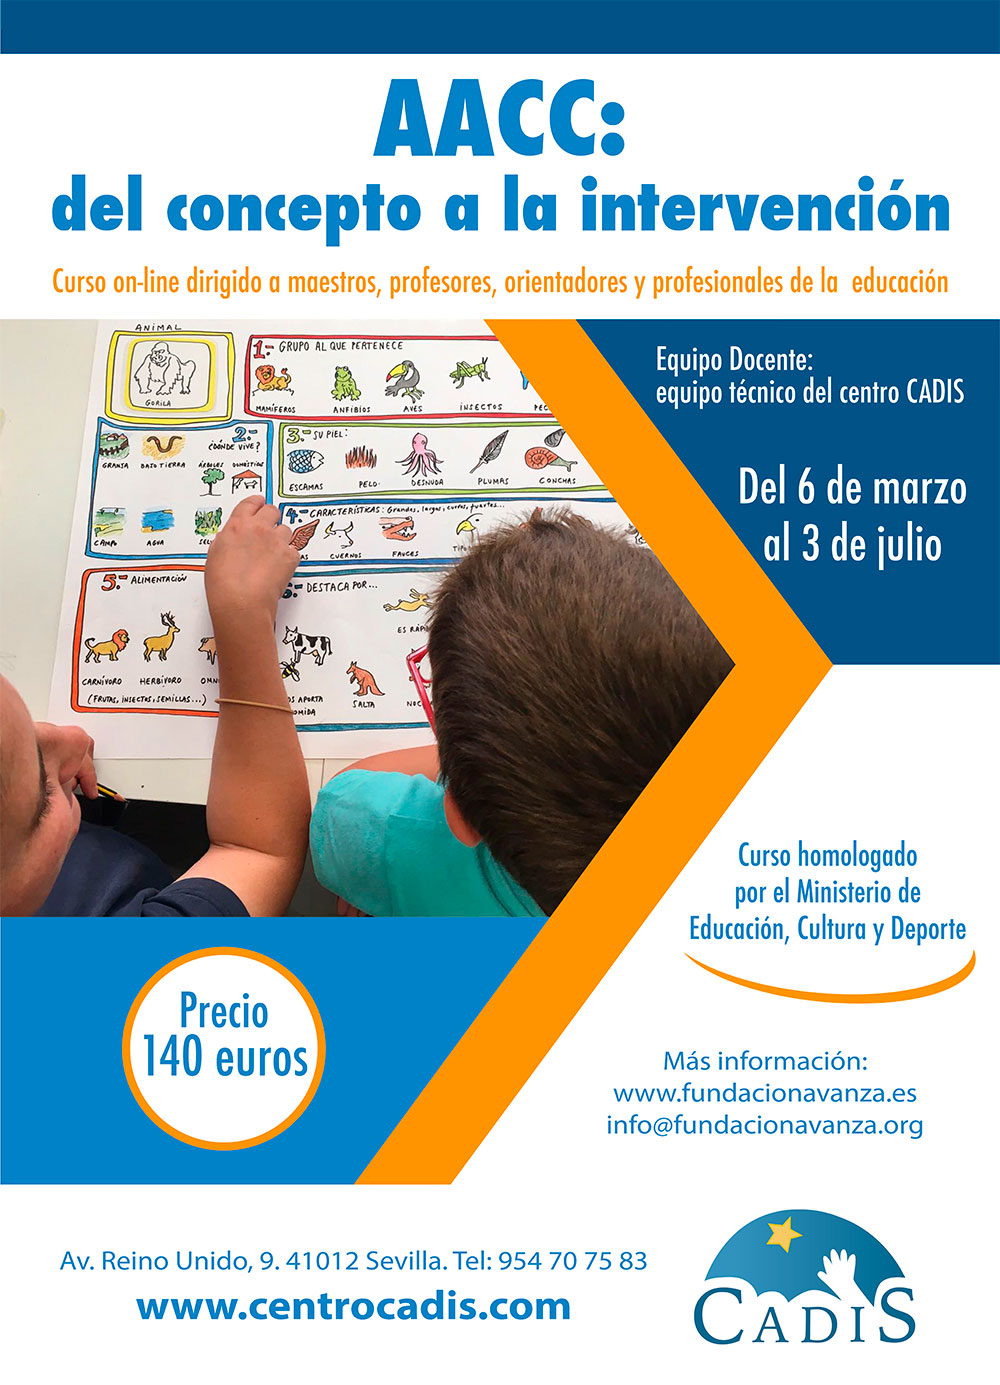 cartel-del-concepto-a-la-intervencion